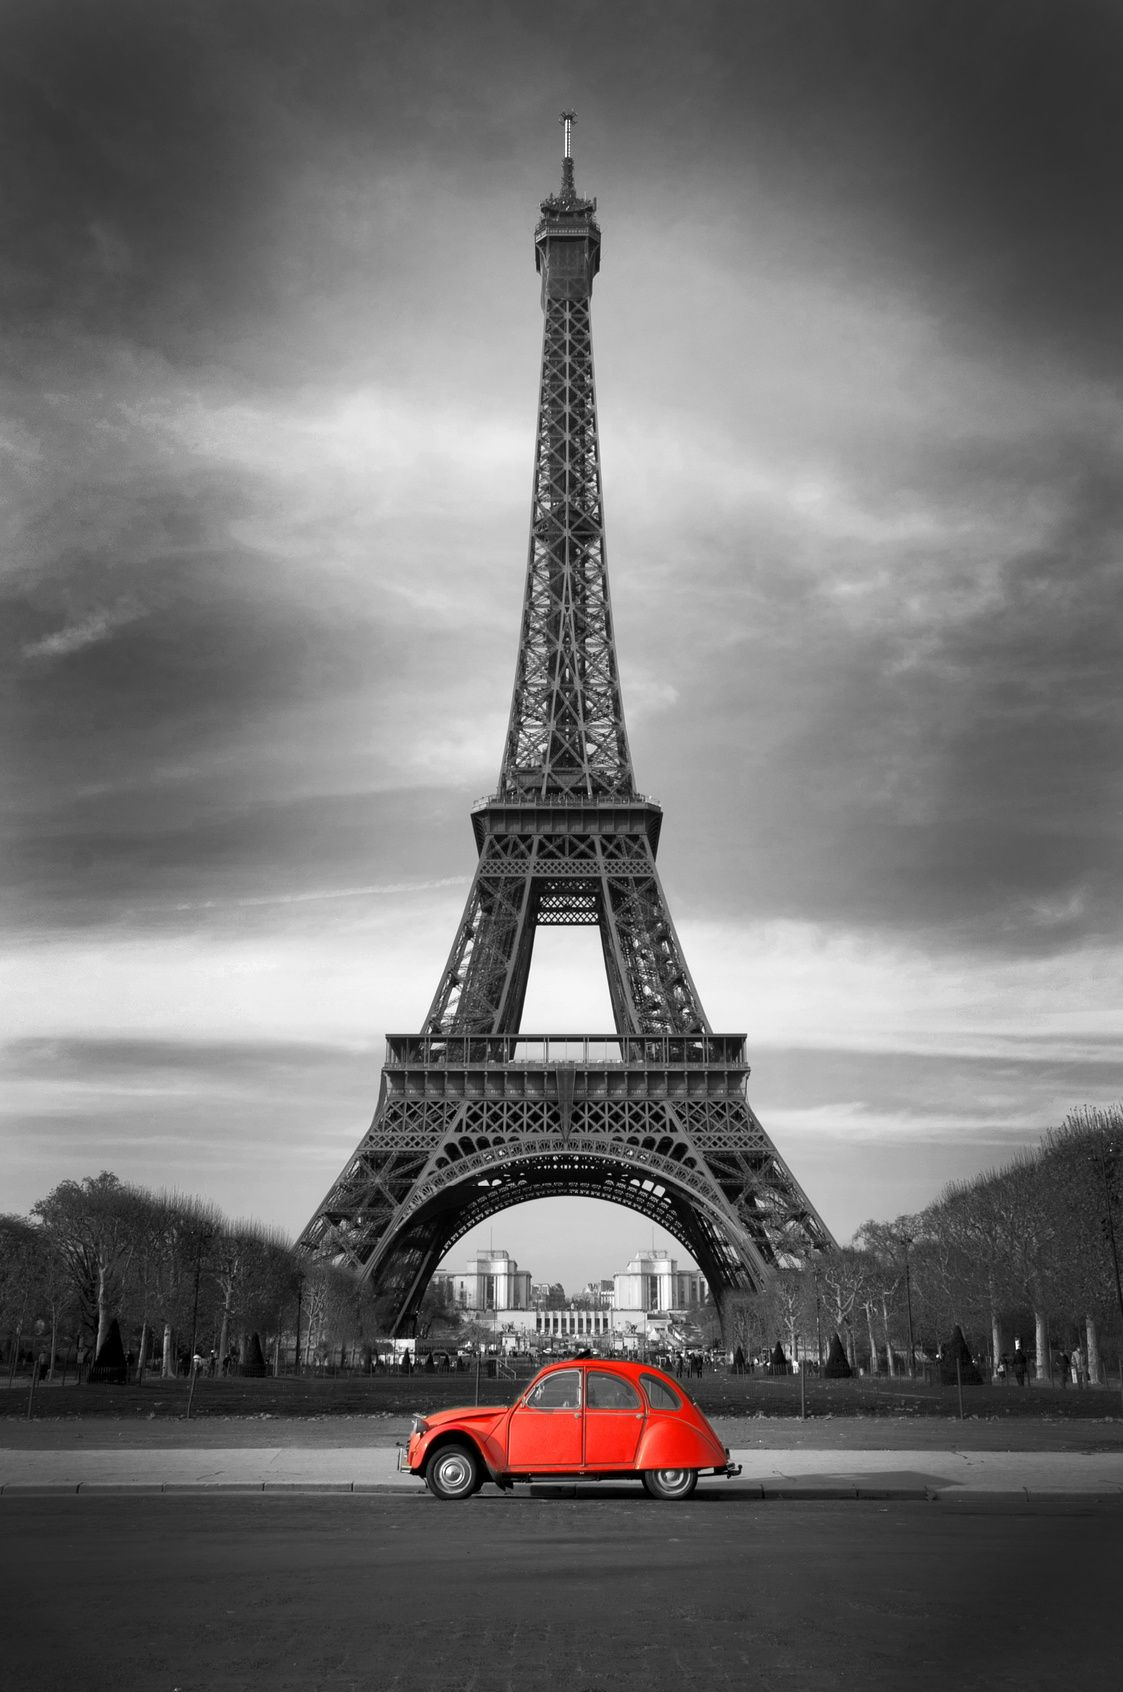 tour eiffel et voiture rouge paris bilder poster pinterest schwarz wei rot bilder. Black Bedroom Furniture Sets. Home Design Ideas